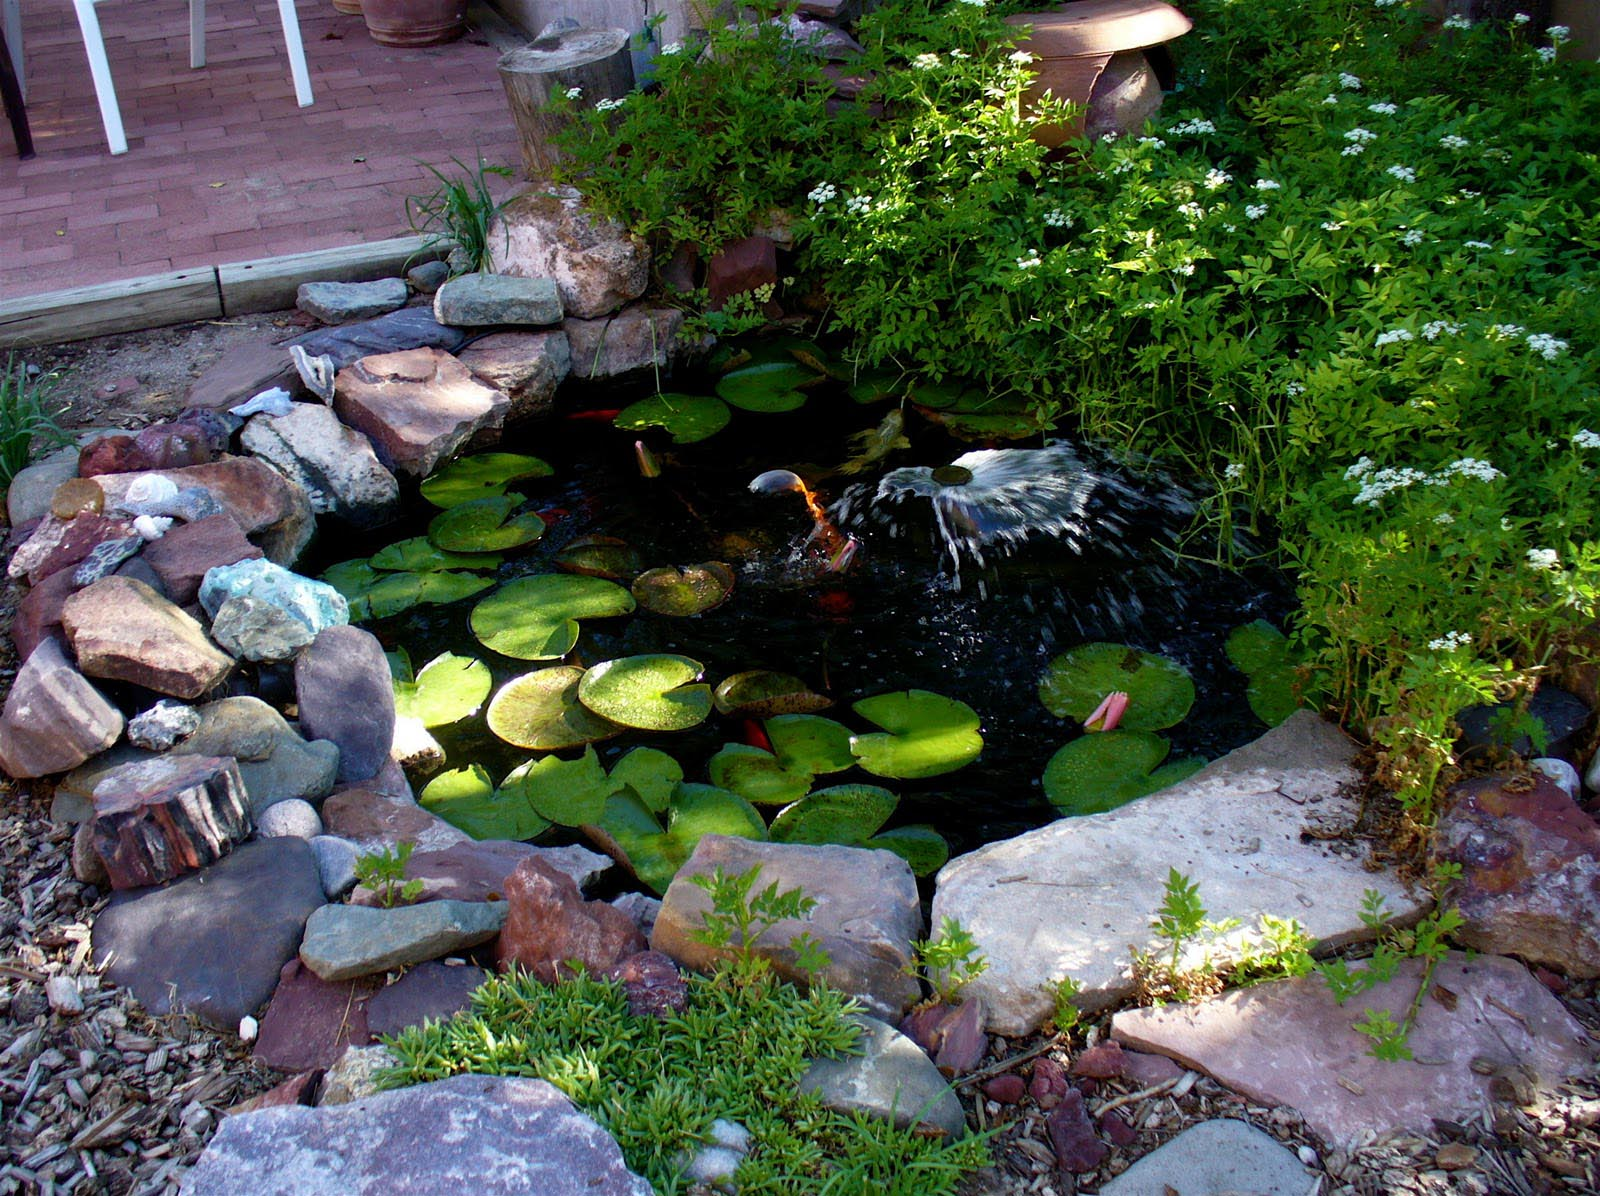 Garden fish pond ideas backyard design ideas for Indoor fish pond ideas